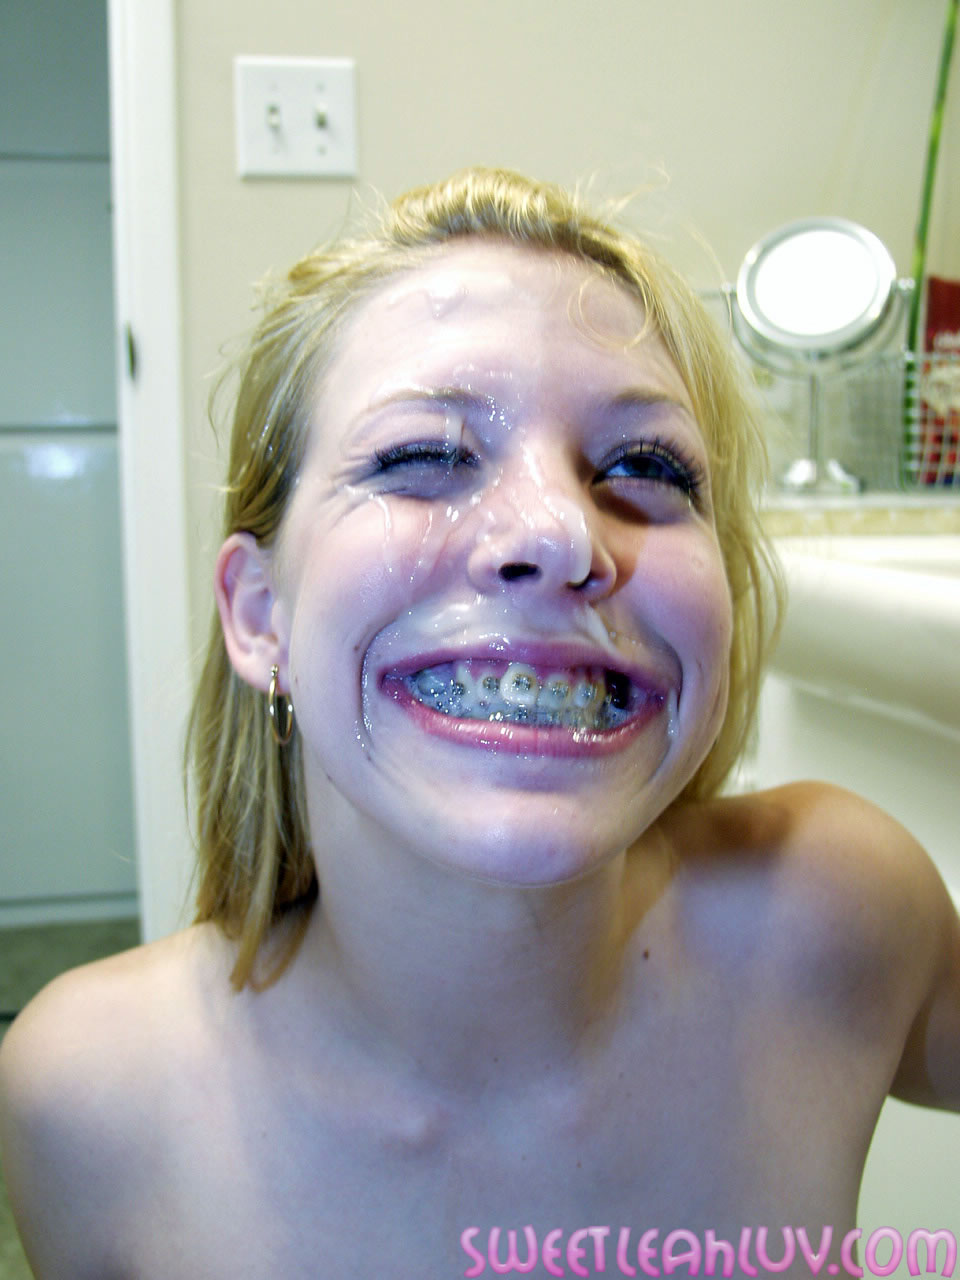 And Blonde with braces cum facial think